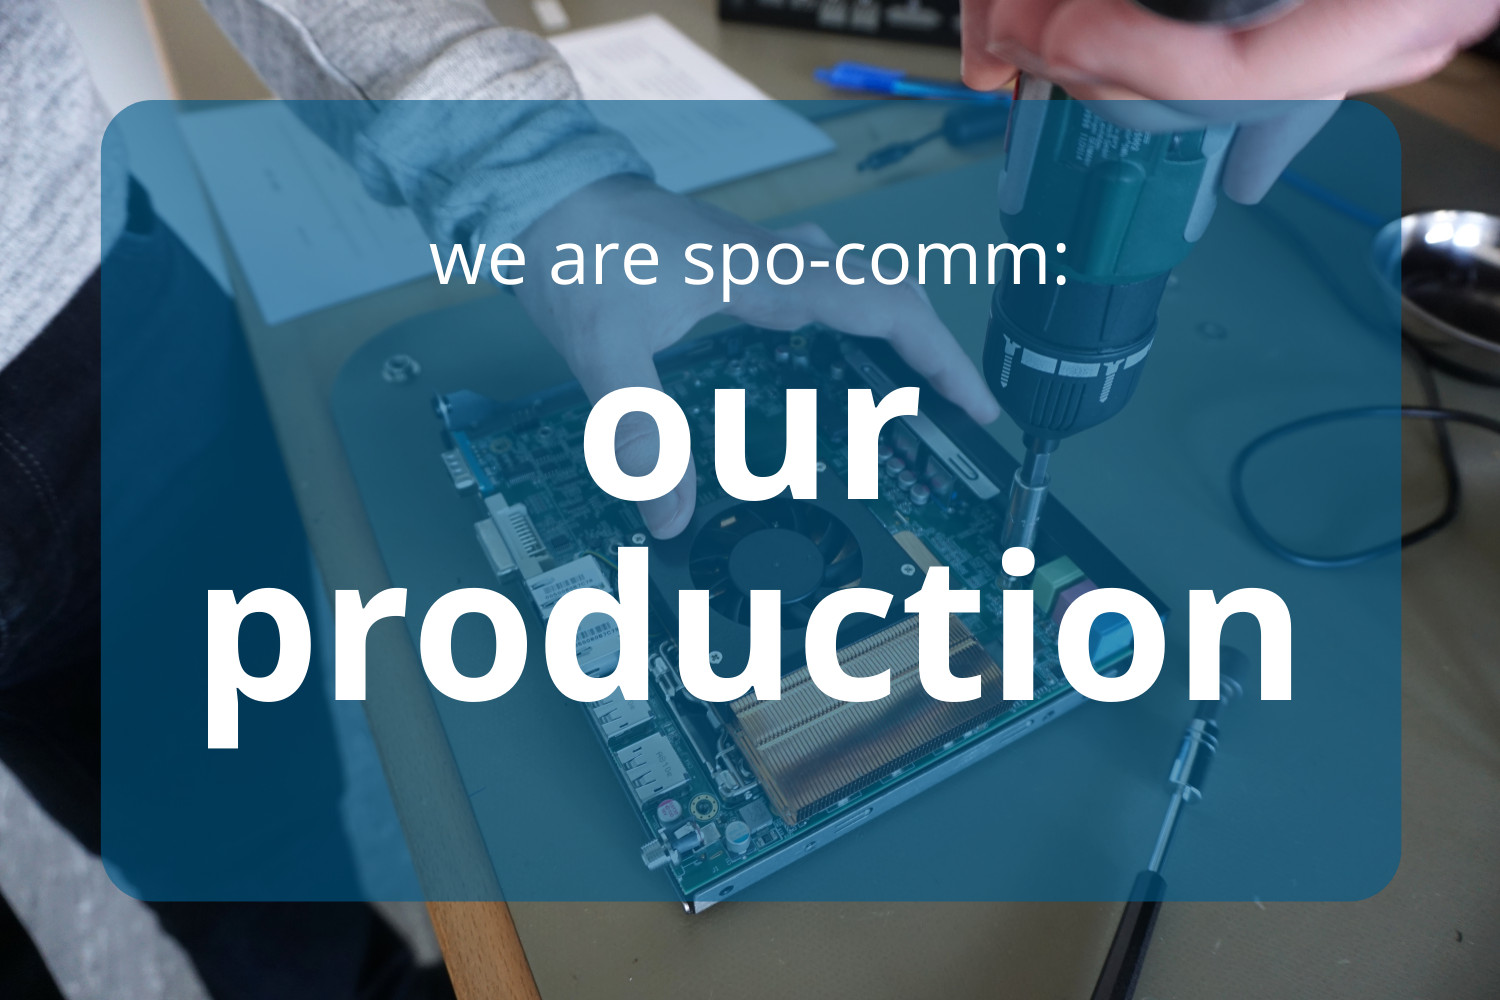 Screws, barcodes and package tape: The spo-comm production